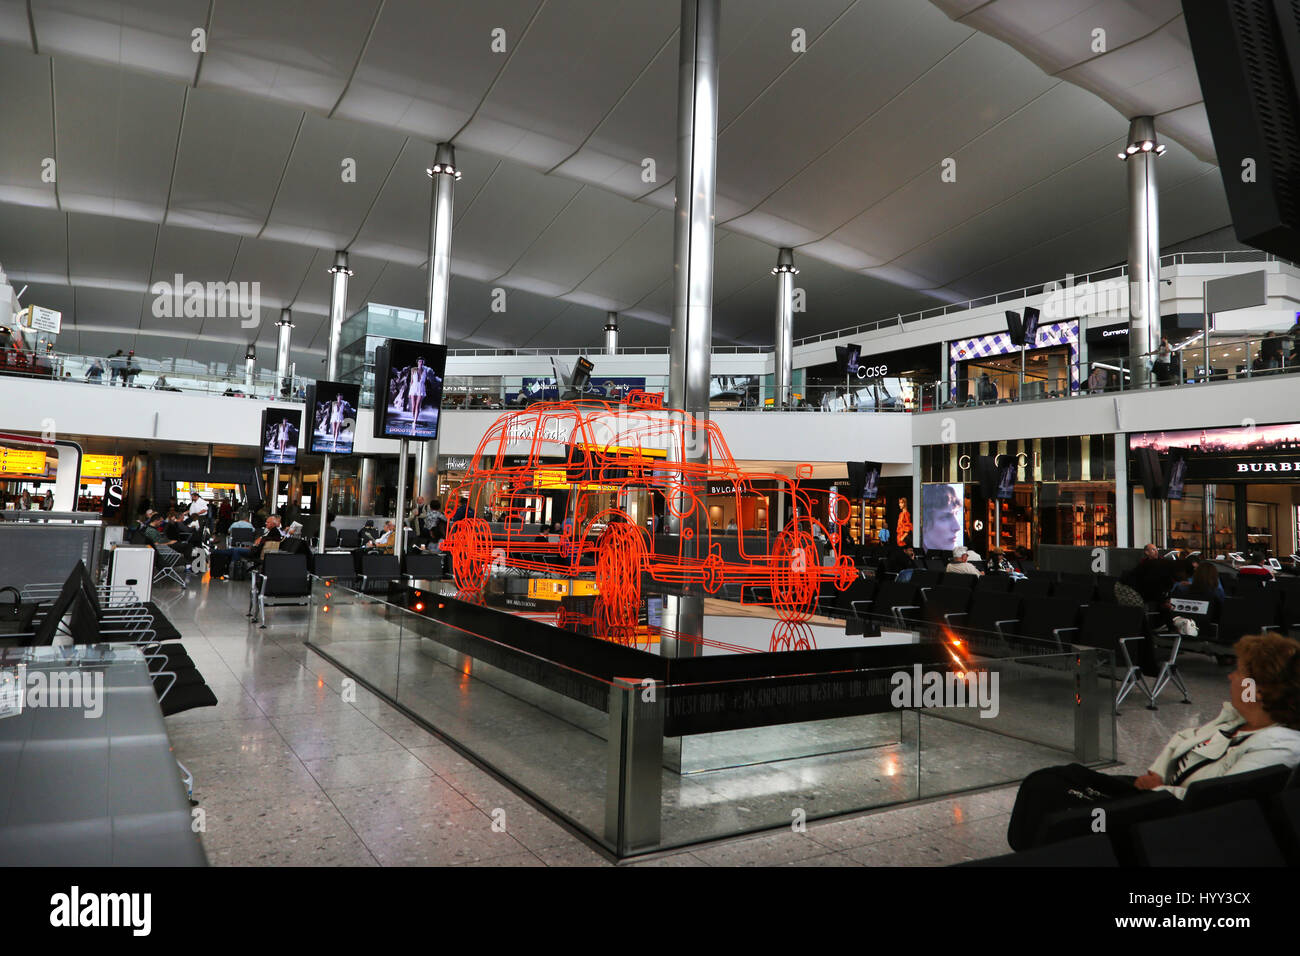 England Heathrow Airport Terminal Two Departure Lounge With Art Work Of A London Taxi - Stock Image